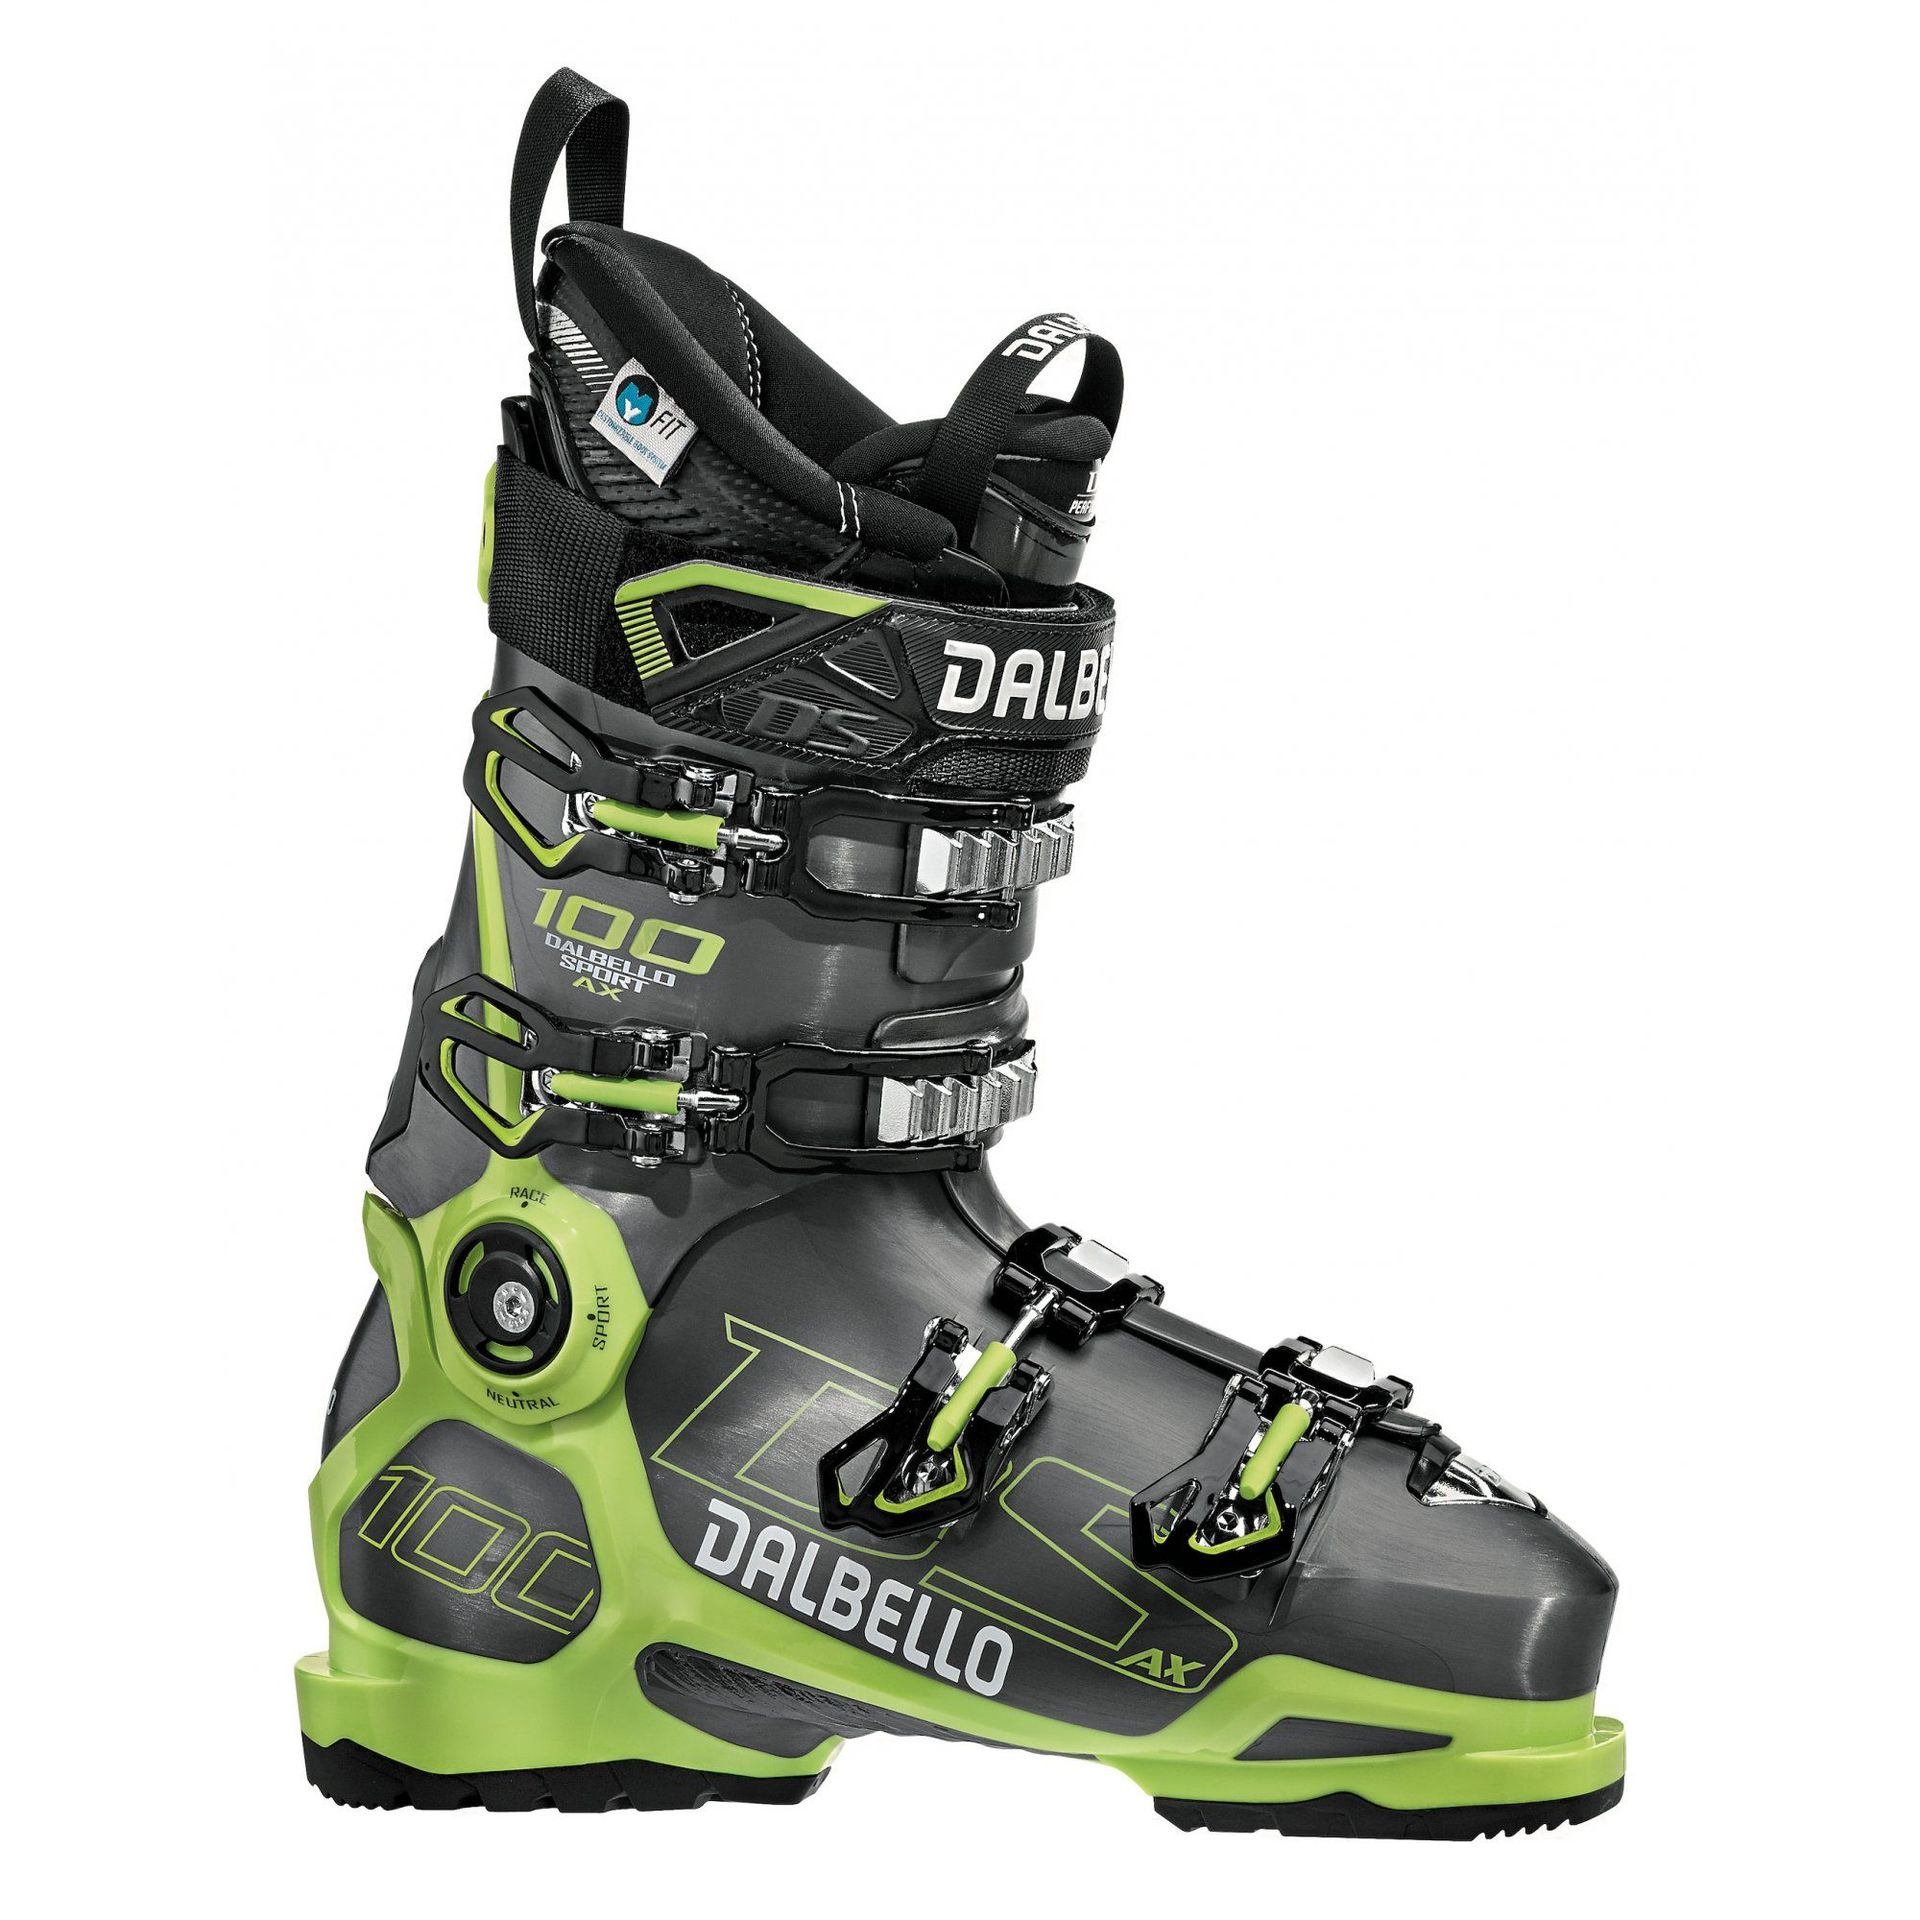 BUTY NARCIARSKIE DALBELLO DS AX 100 ANTHRACITE|ACID YELLOW D1804002-00